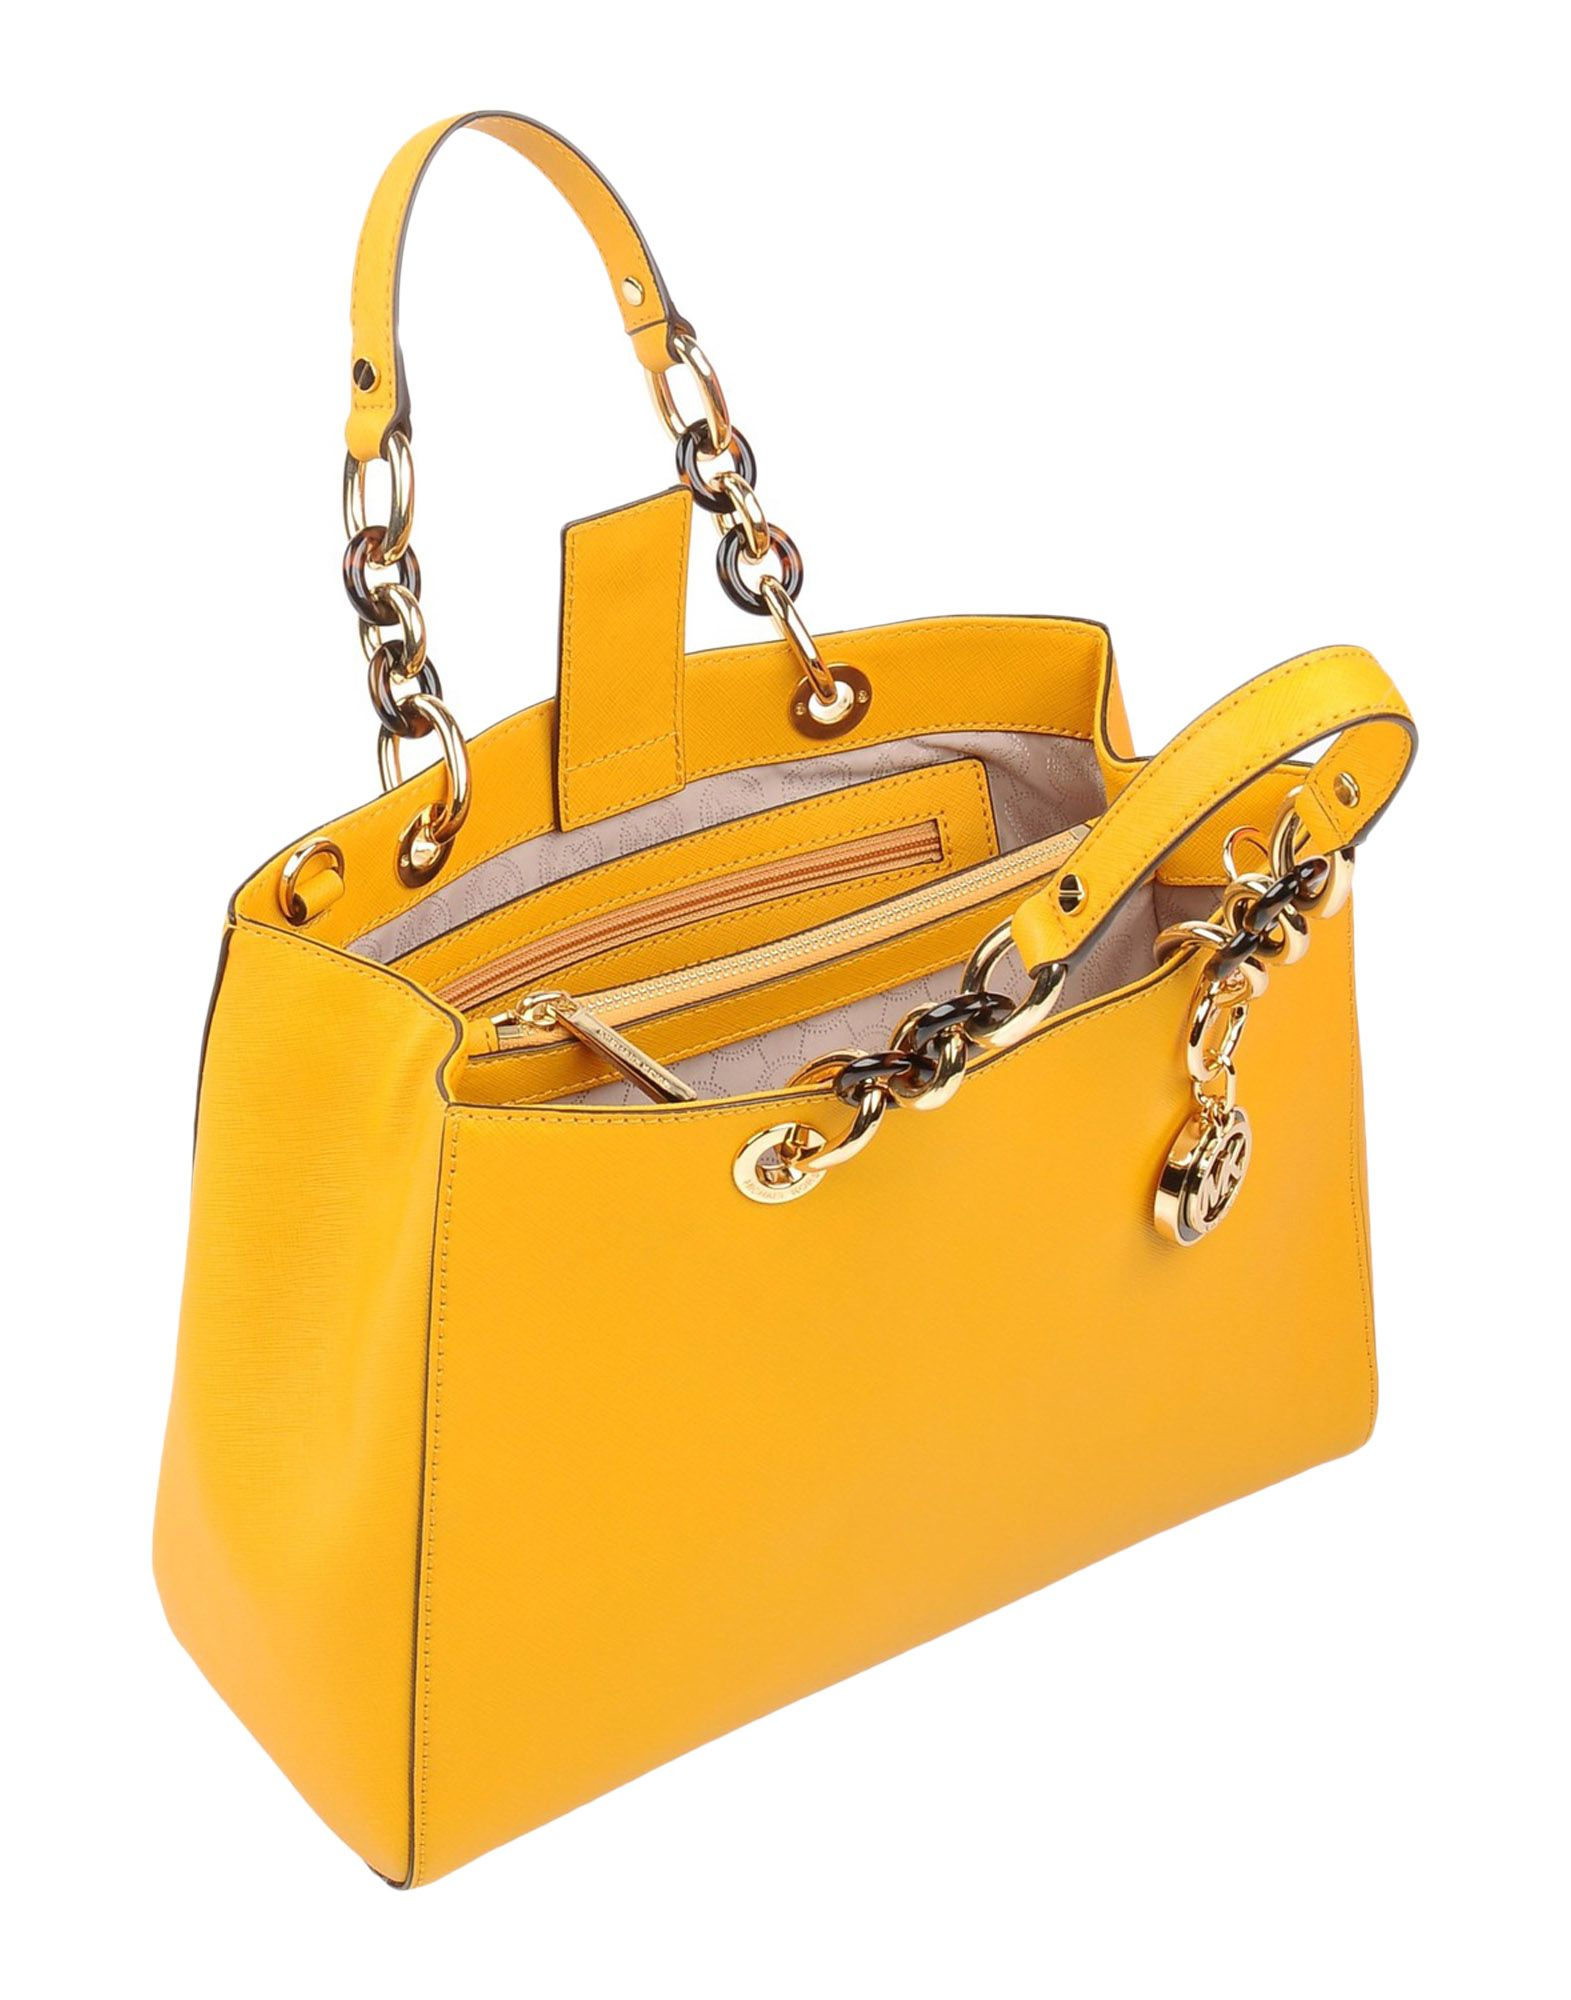 1ba4e12a5855 Lyst - MICHAEL Michael Kors Handbag in Yellow